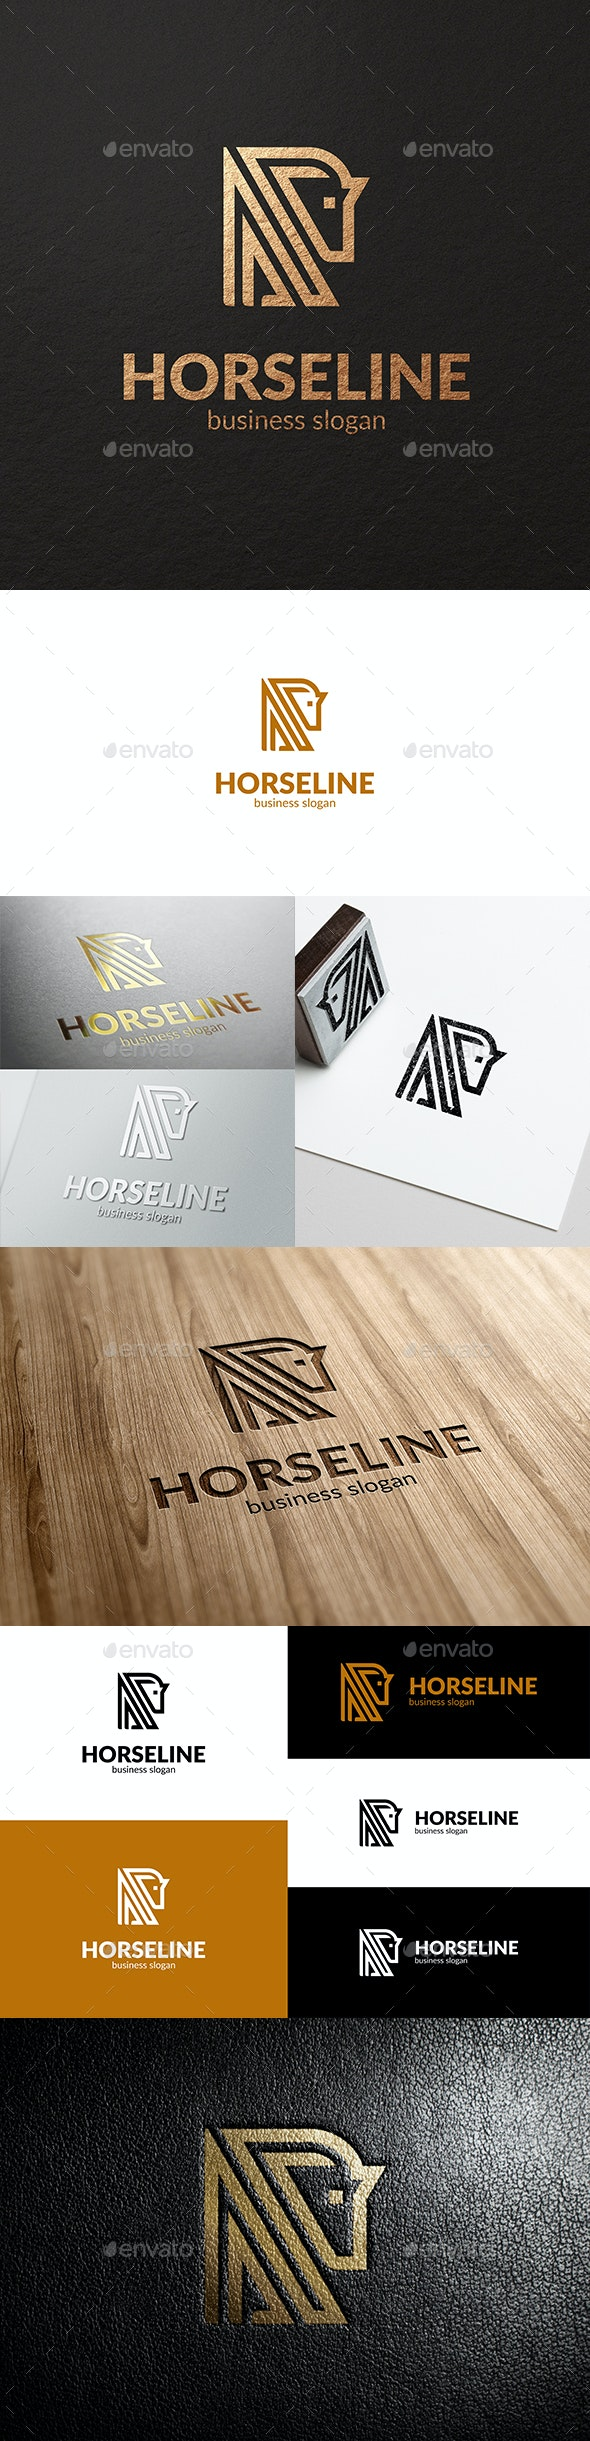 Horse Line Abstract Business Logo - Vector Abstract